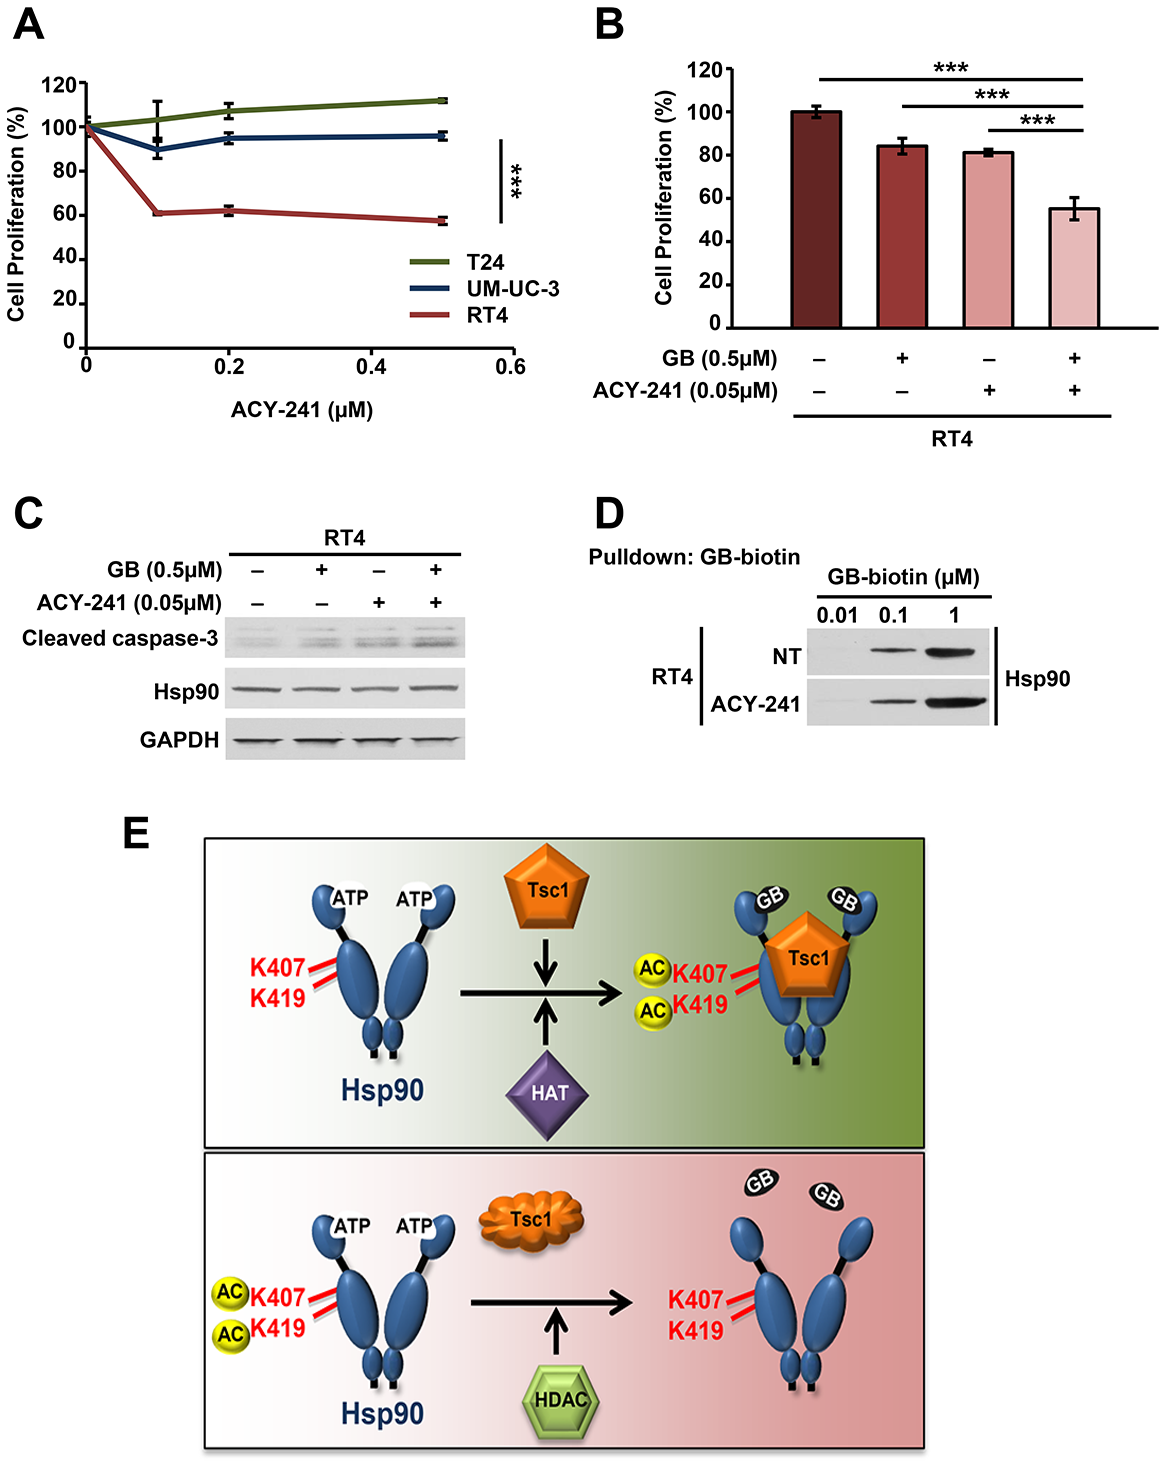 HDAC inhibition synergizes with Hsp90 inhibition to induce apoptosis in bladder cancer.